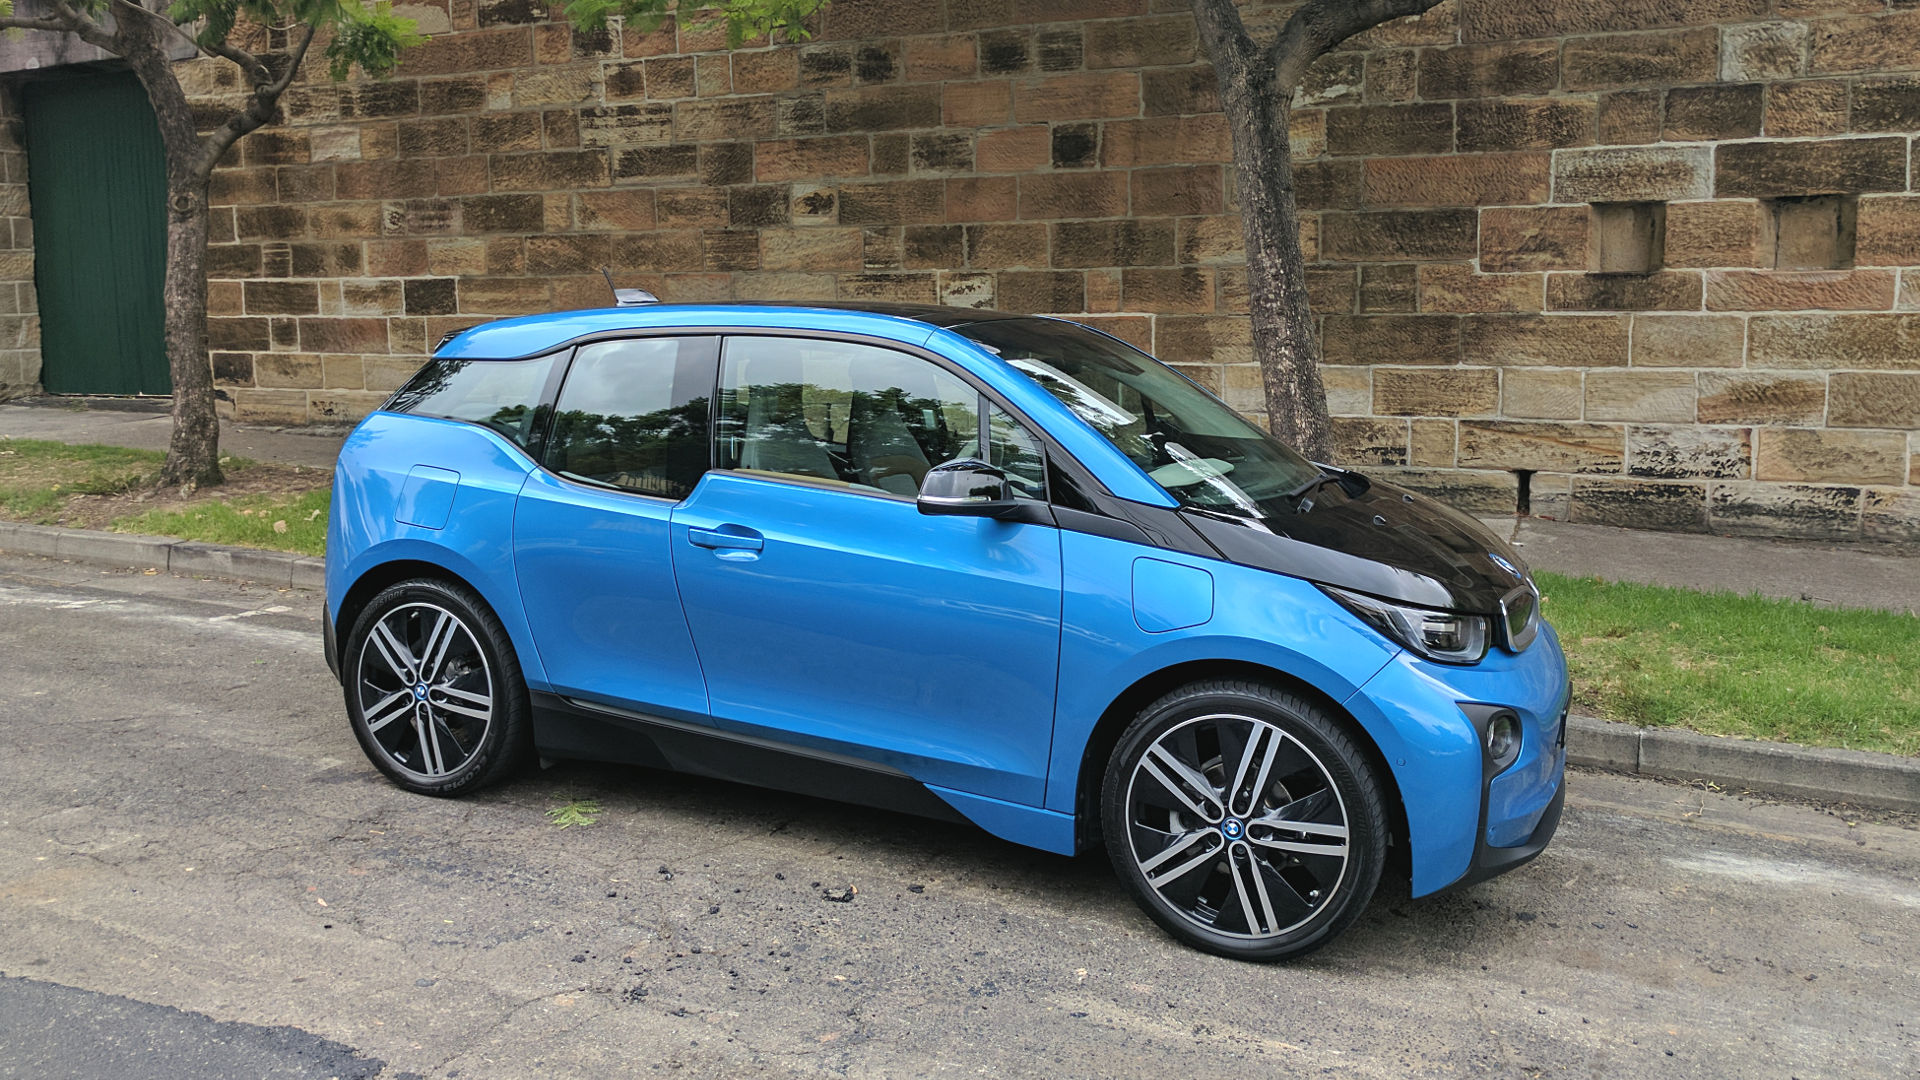 2014 BMW i3 Electric Car debut on July 29